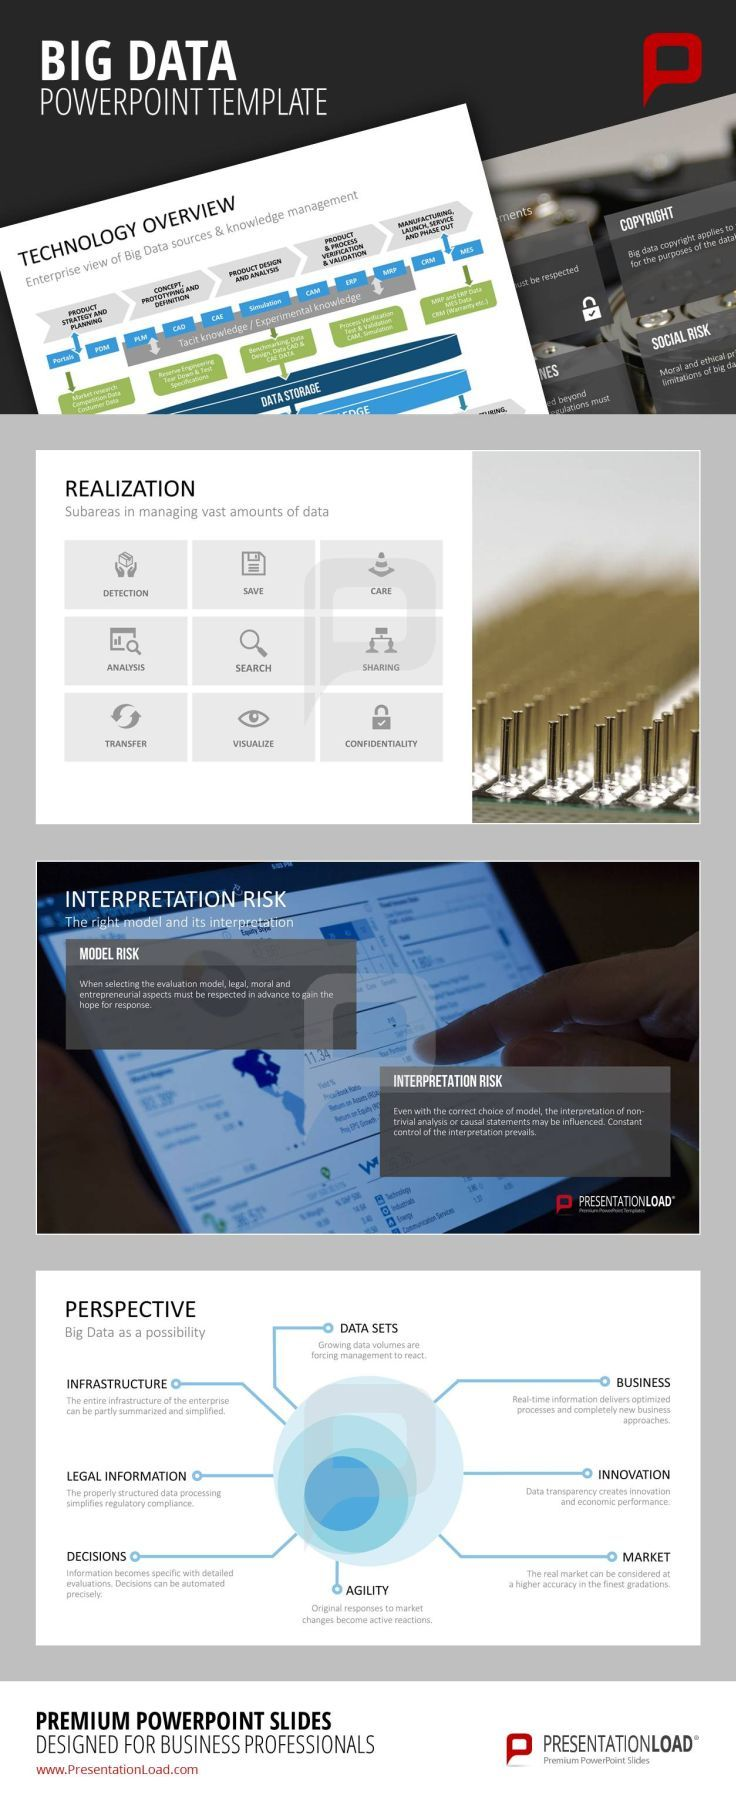 Big data powerpoint template by using big data tools you will big data powerpoint template by using big data tools you will gather competitive advantages cheaphphosting Choice Image